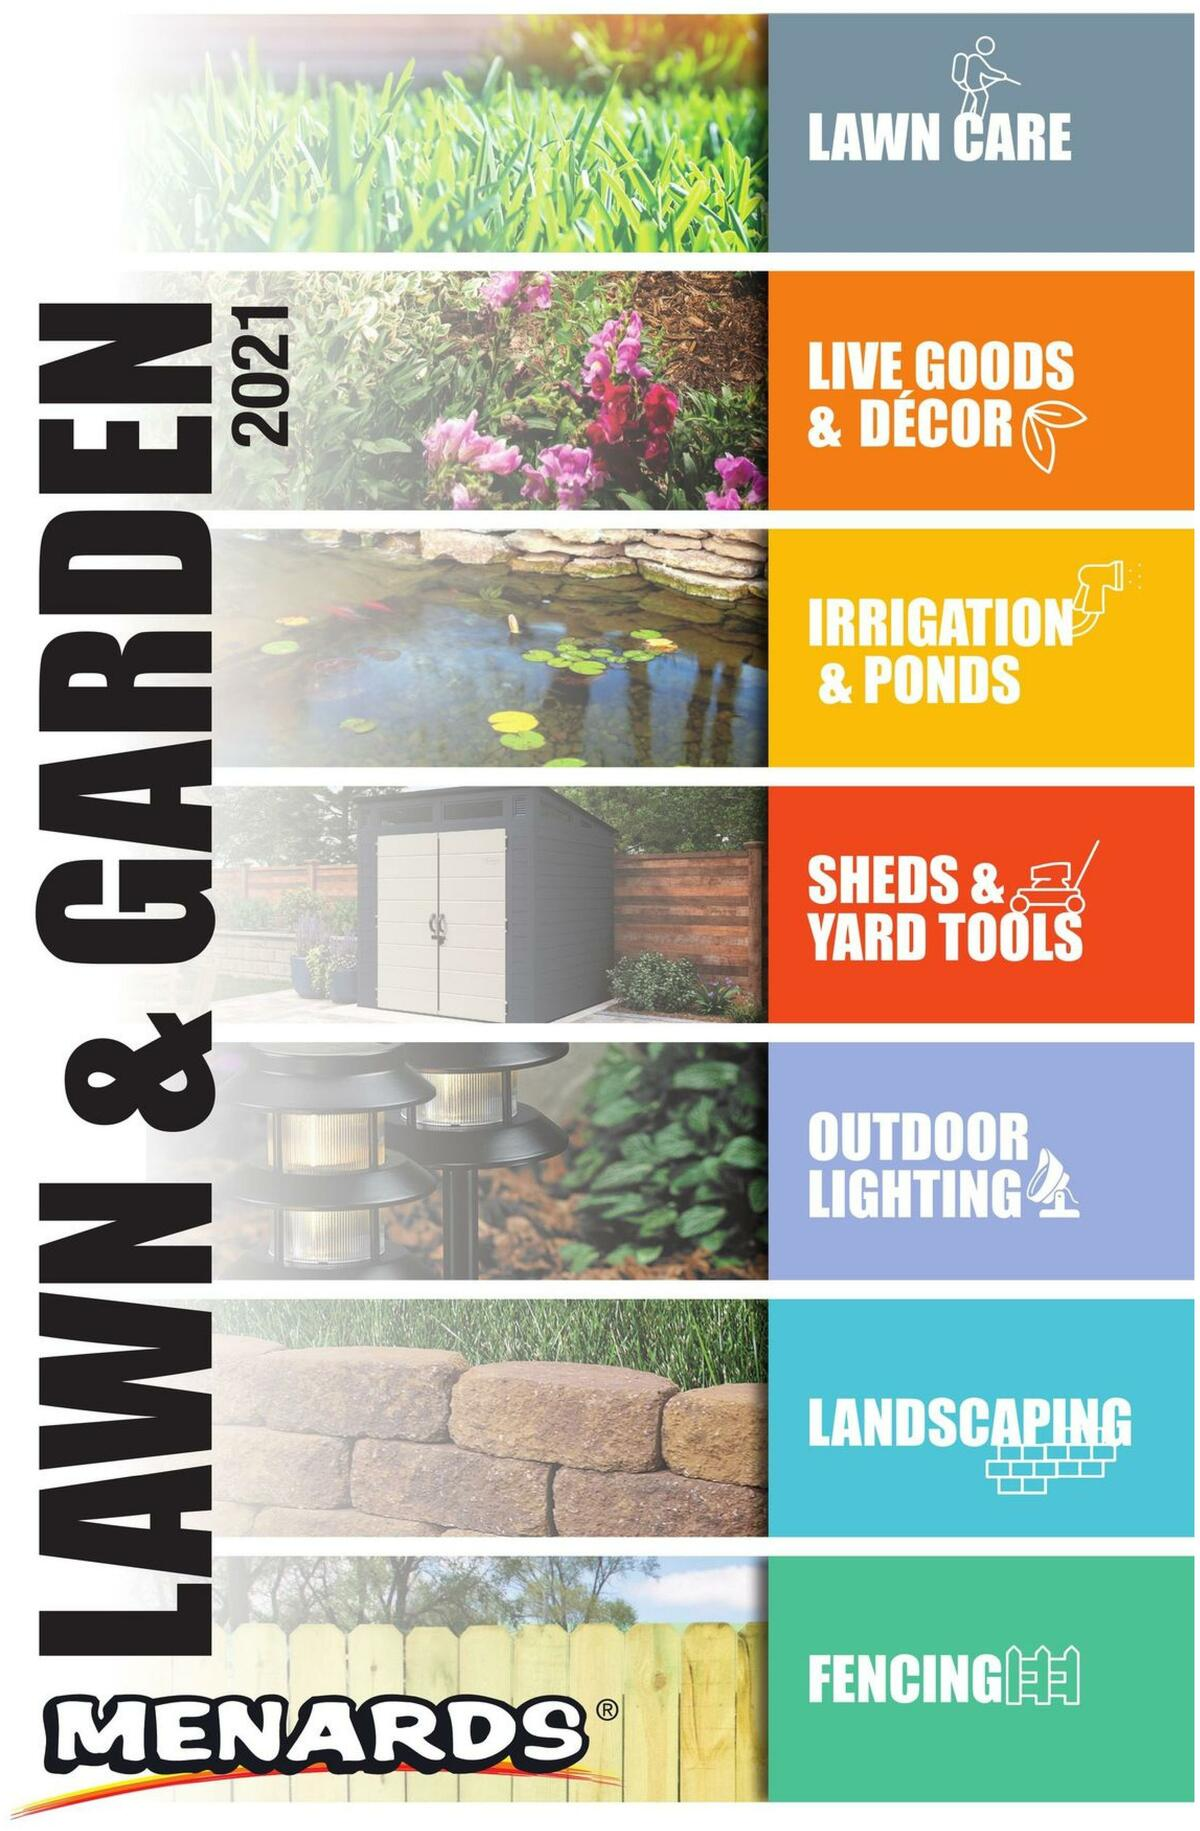 Menards Lawn & Garden Catalog Weekly Ad from March 22